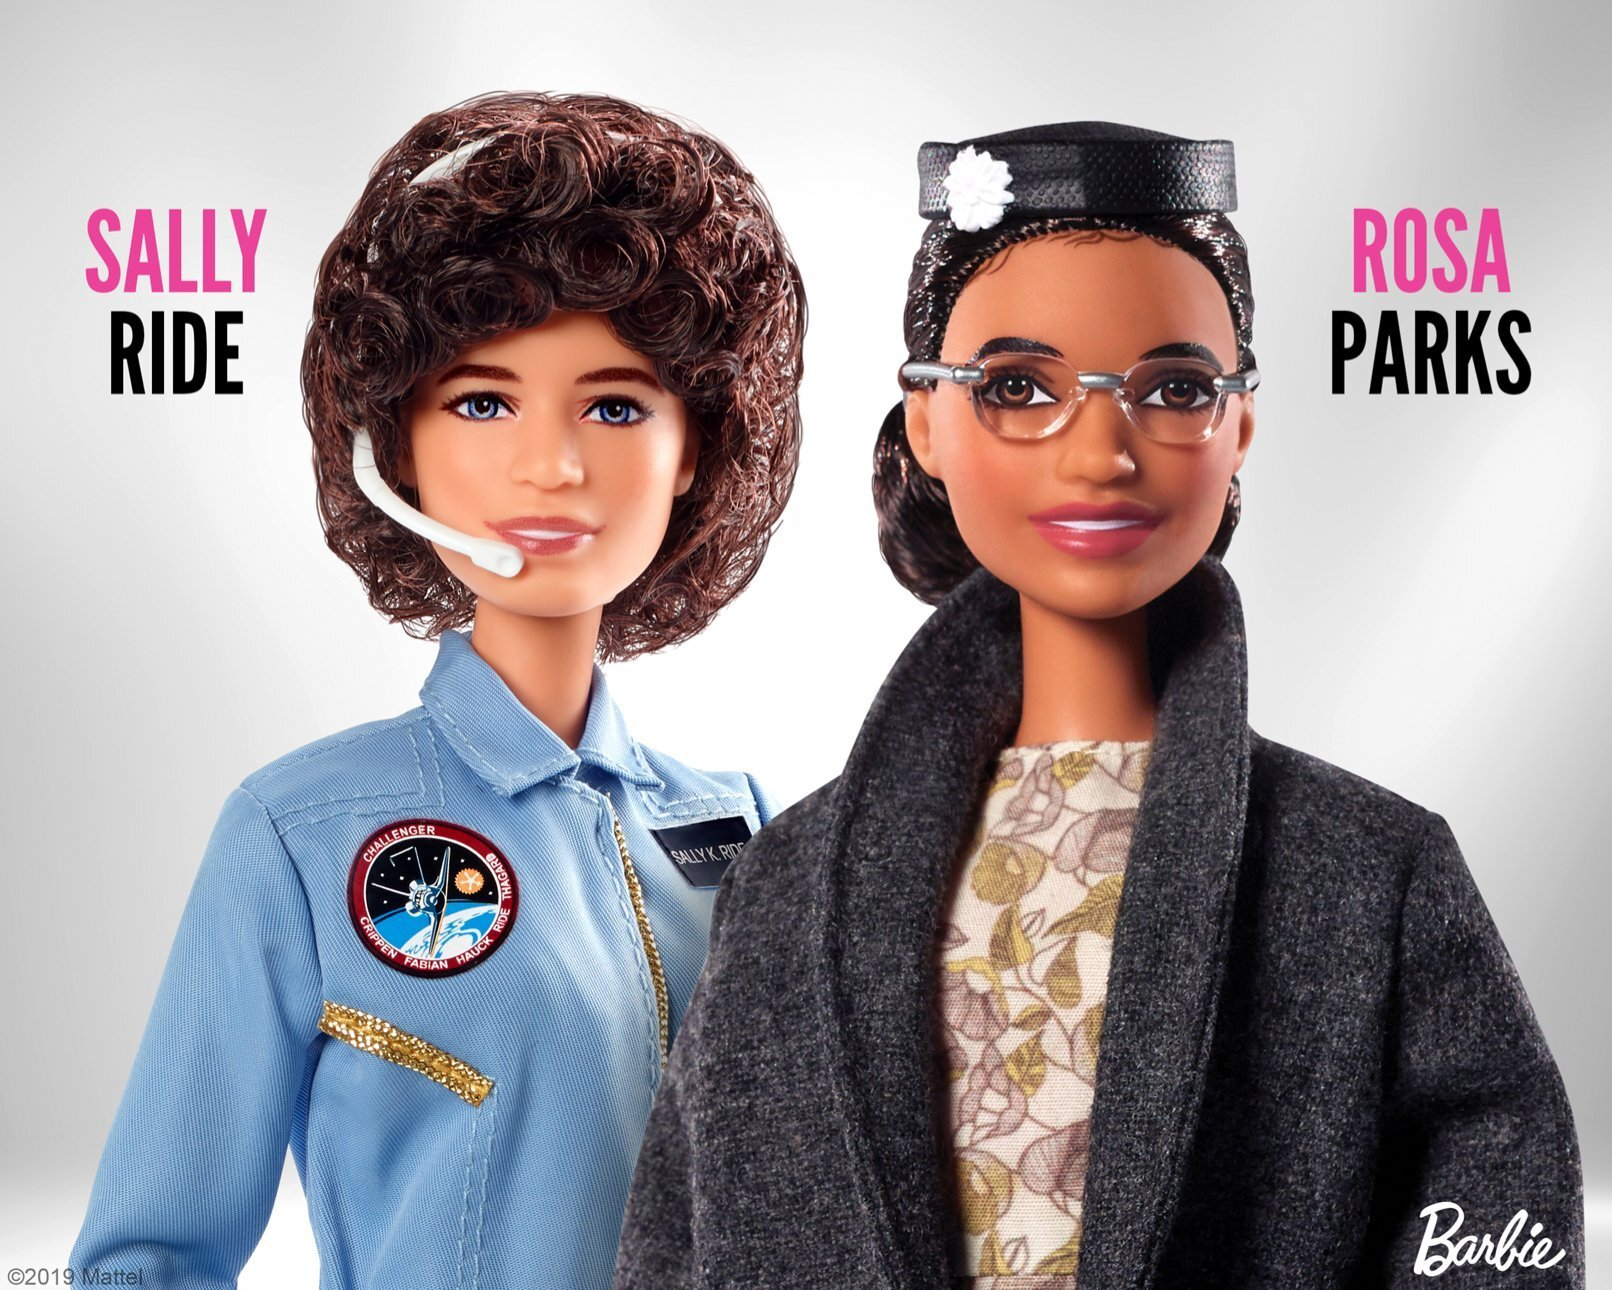 Photos: Rosa Parks and Sally Ride get their very own Barbiedolls